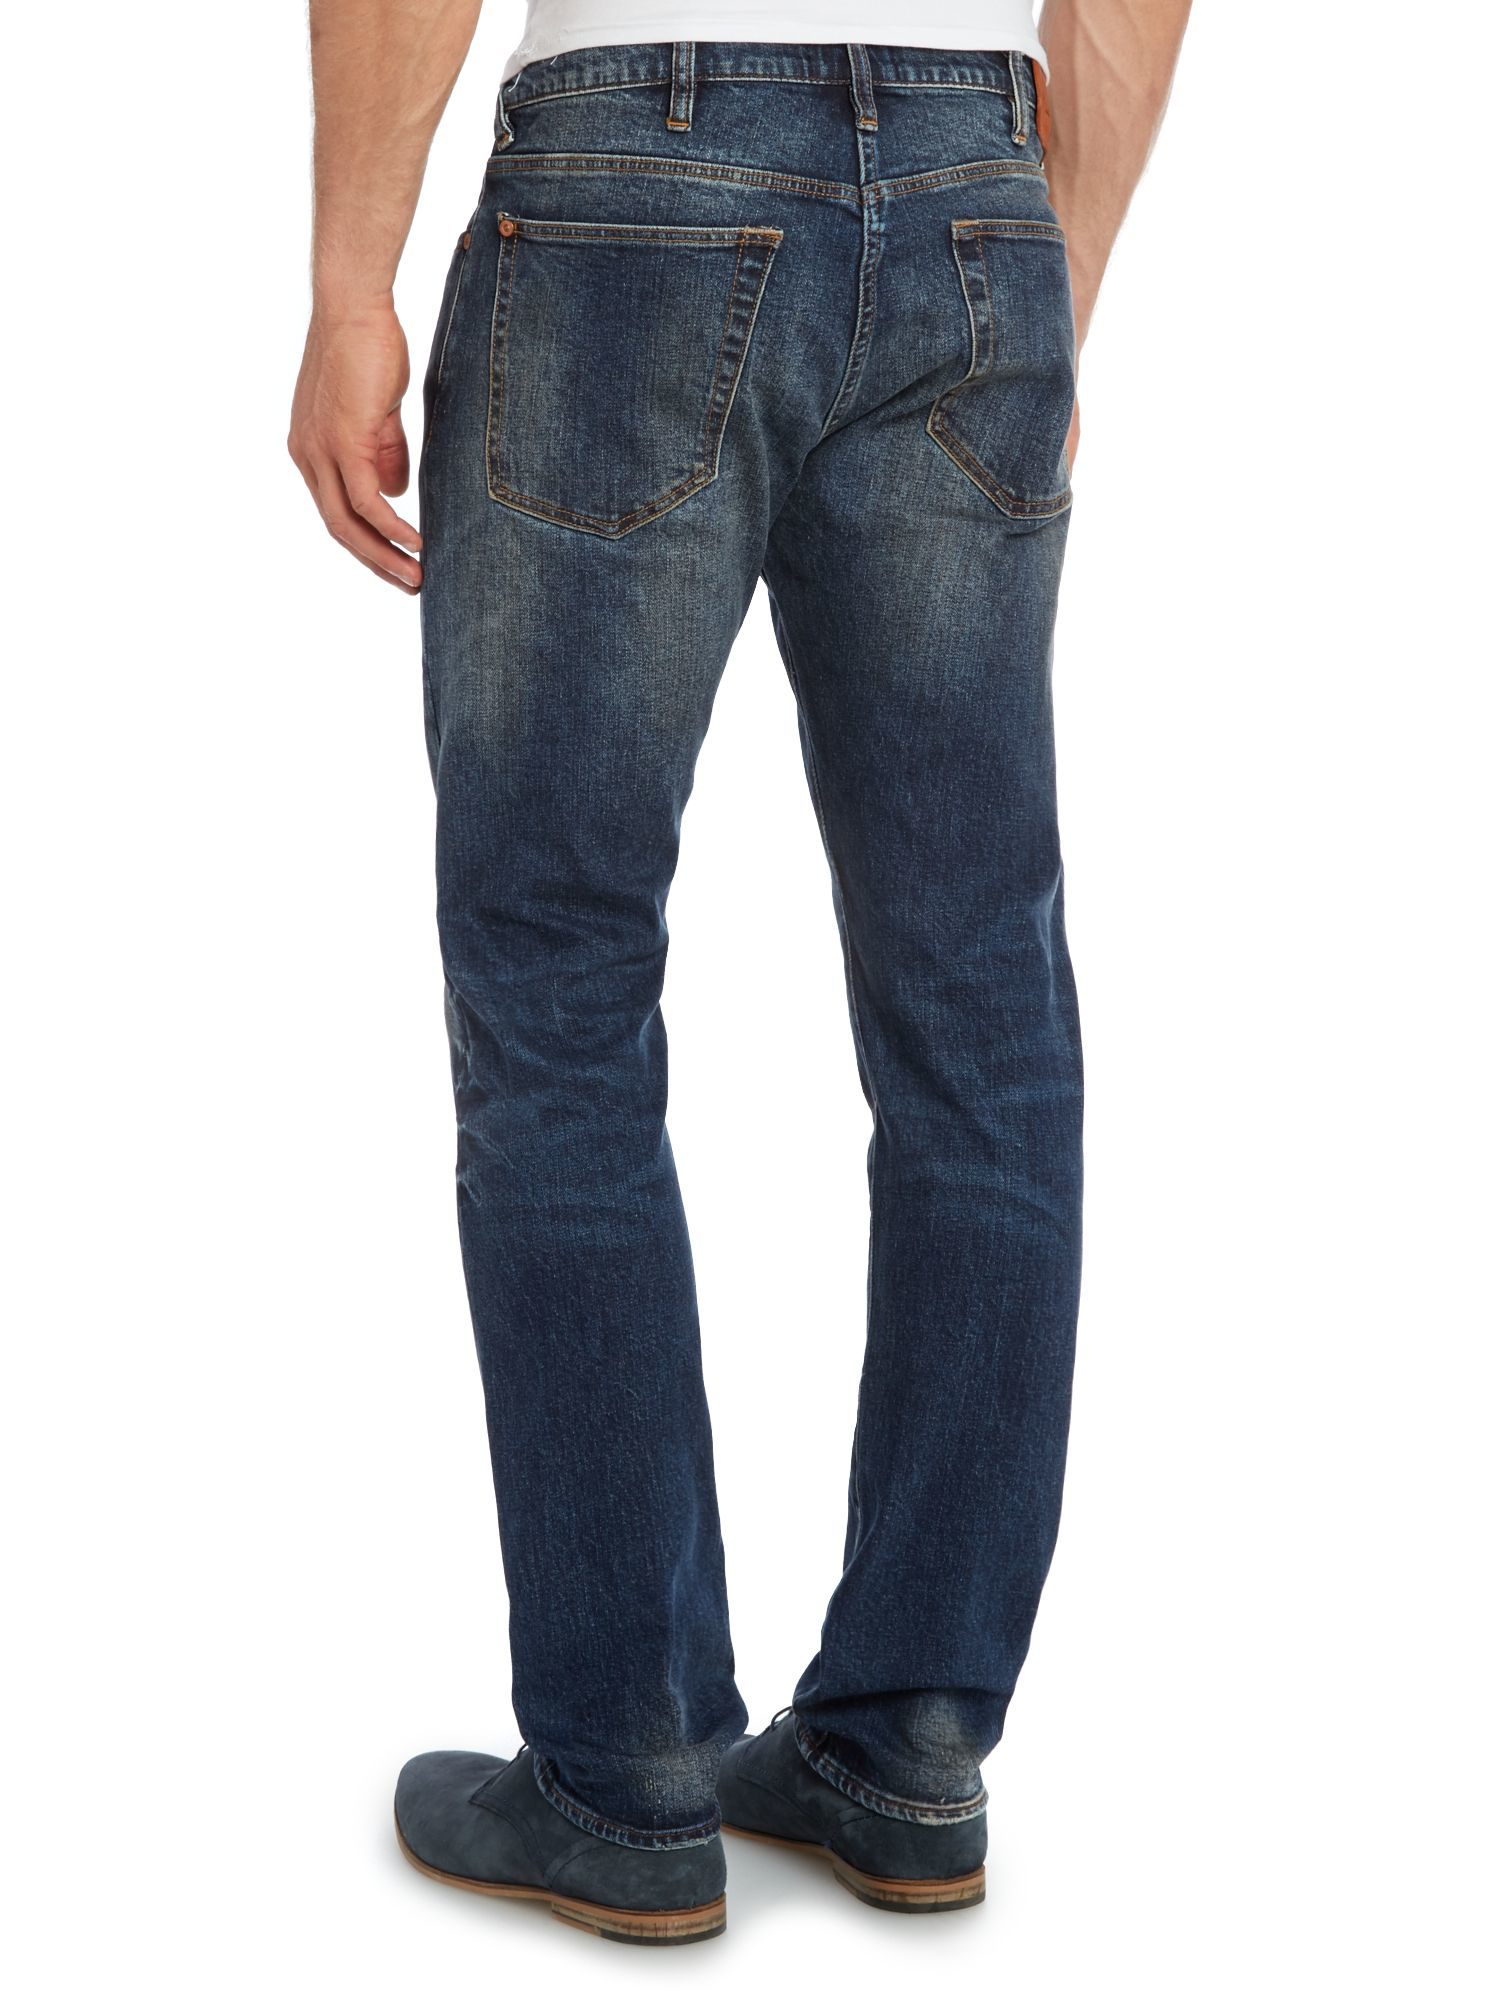 paul smith tapered fit mid wash jeans in blue for men lyst. Black Bedroom Furniture Sets. Home Design Ideas